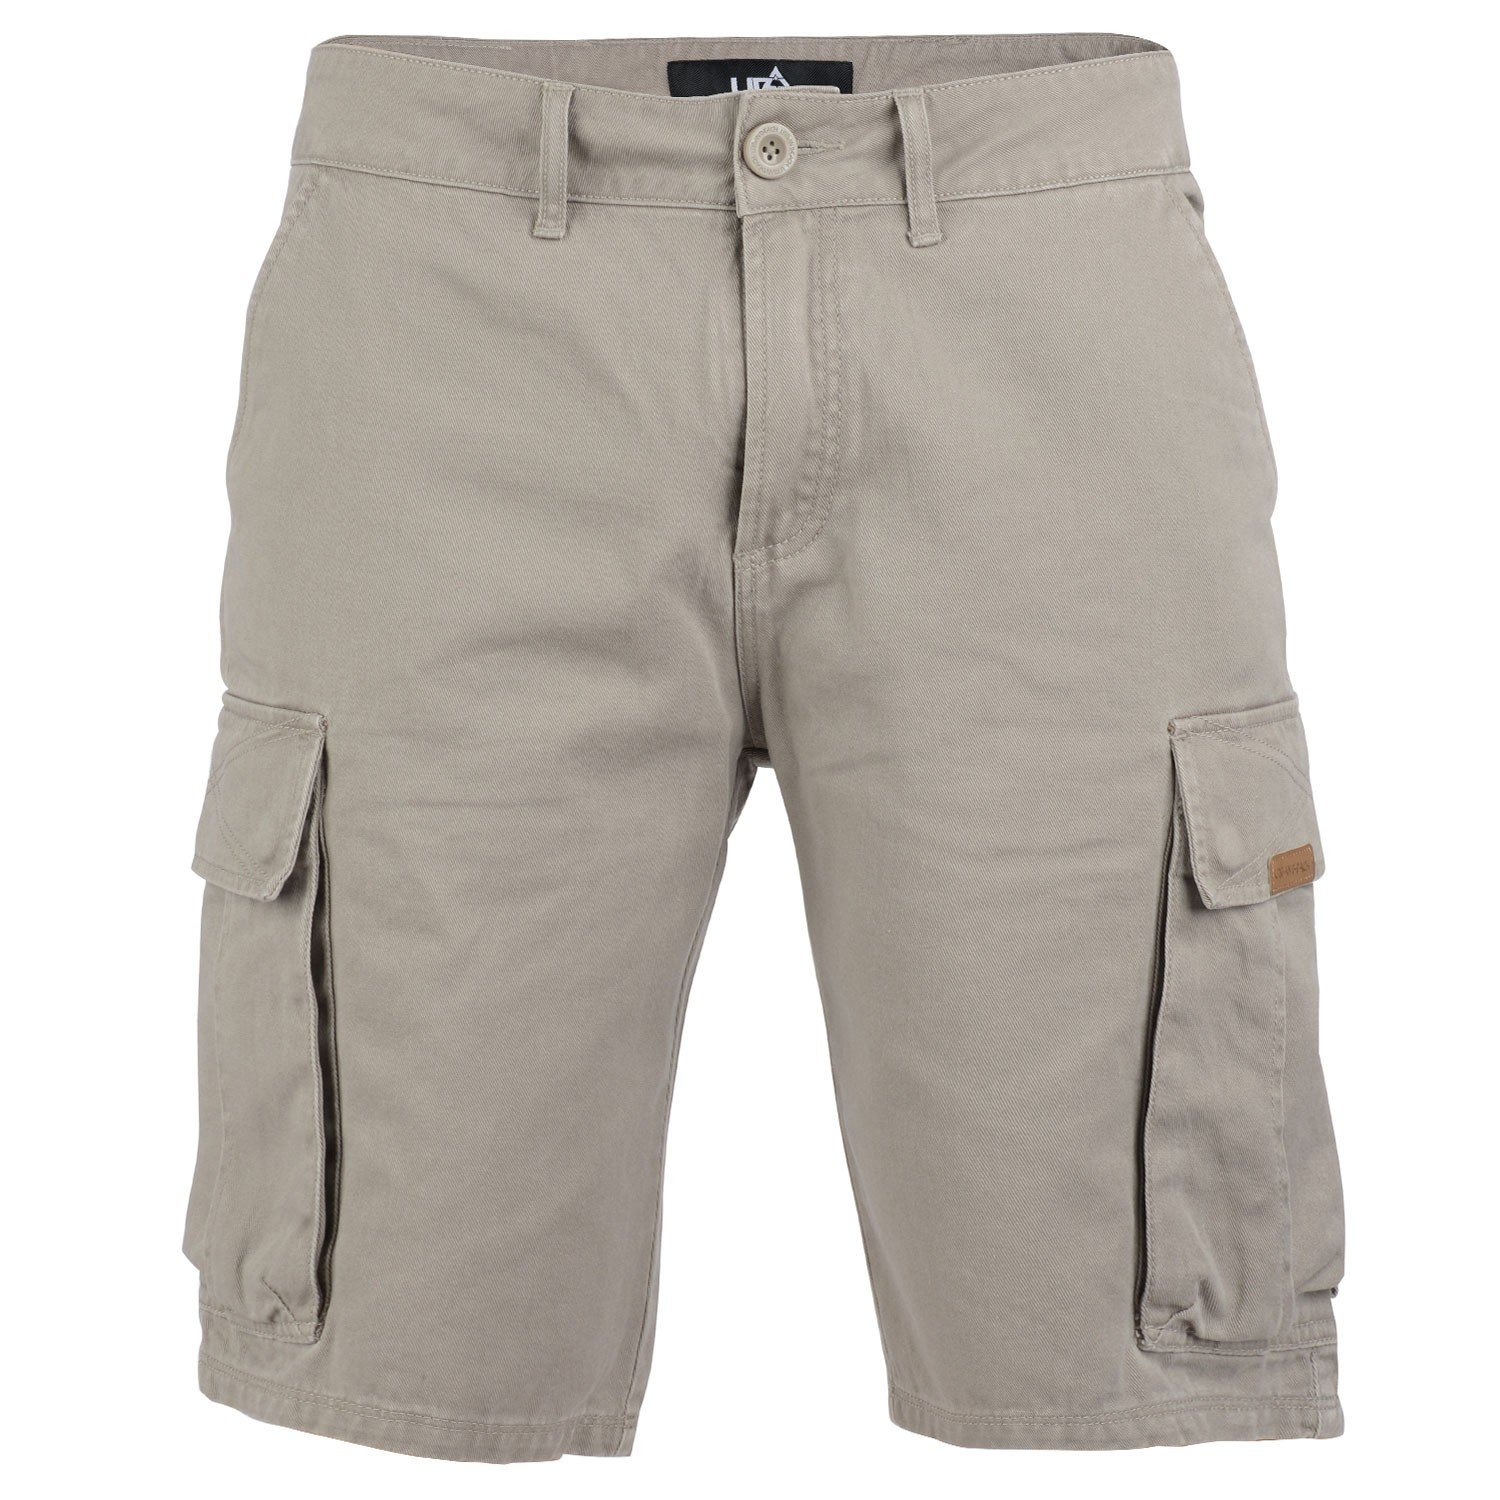 Mens Grey Cargo Shorts Amazon- Free Delivery Over £20 ...